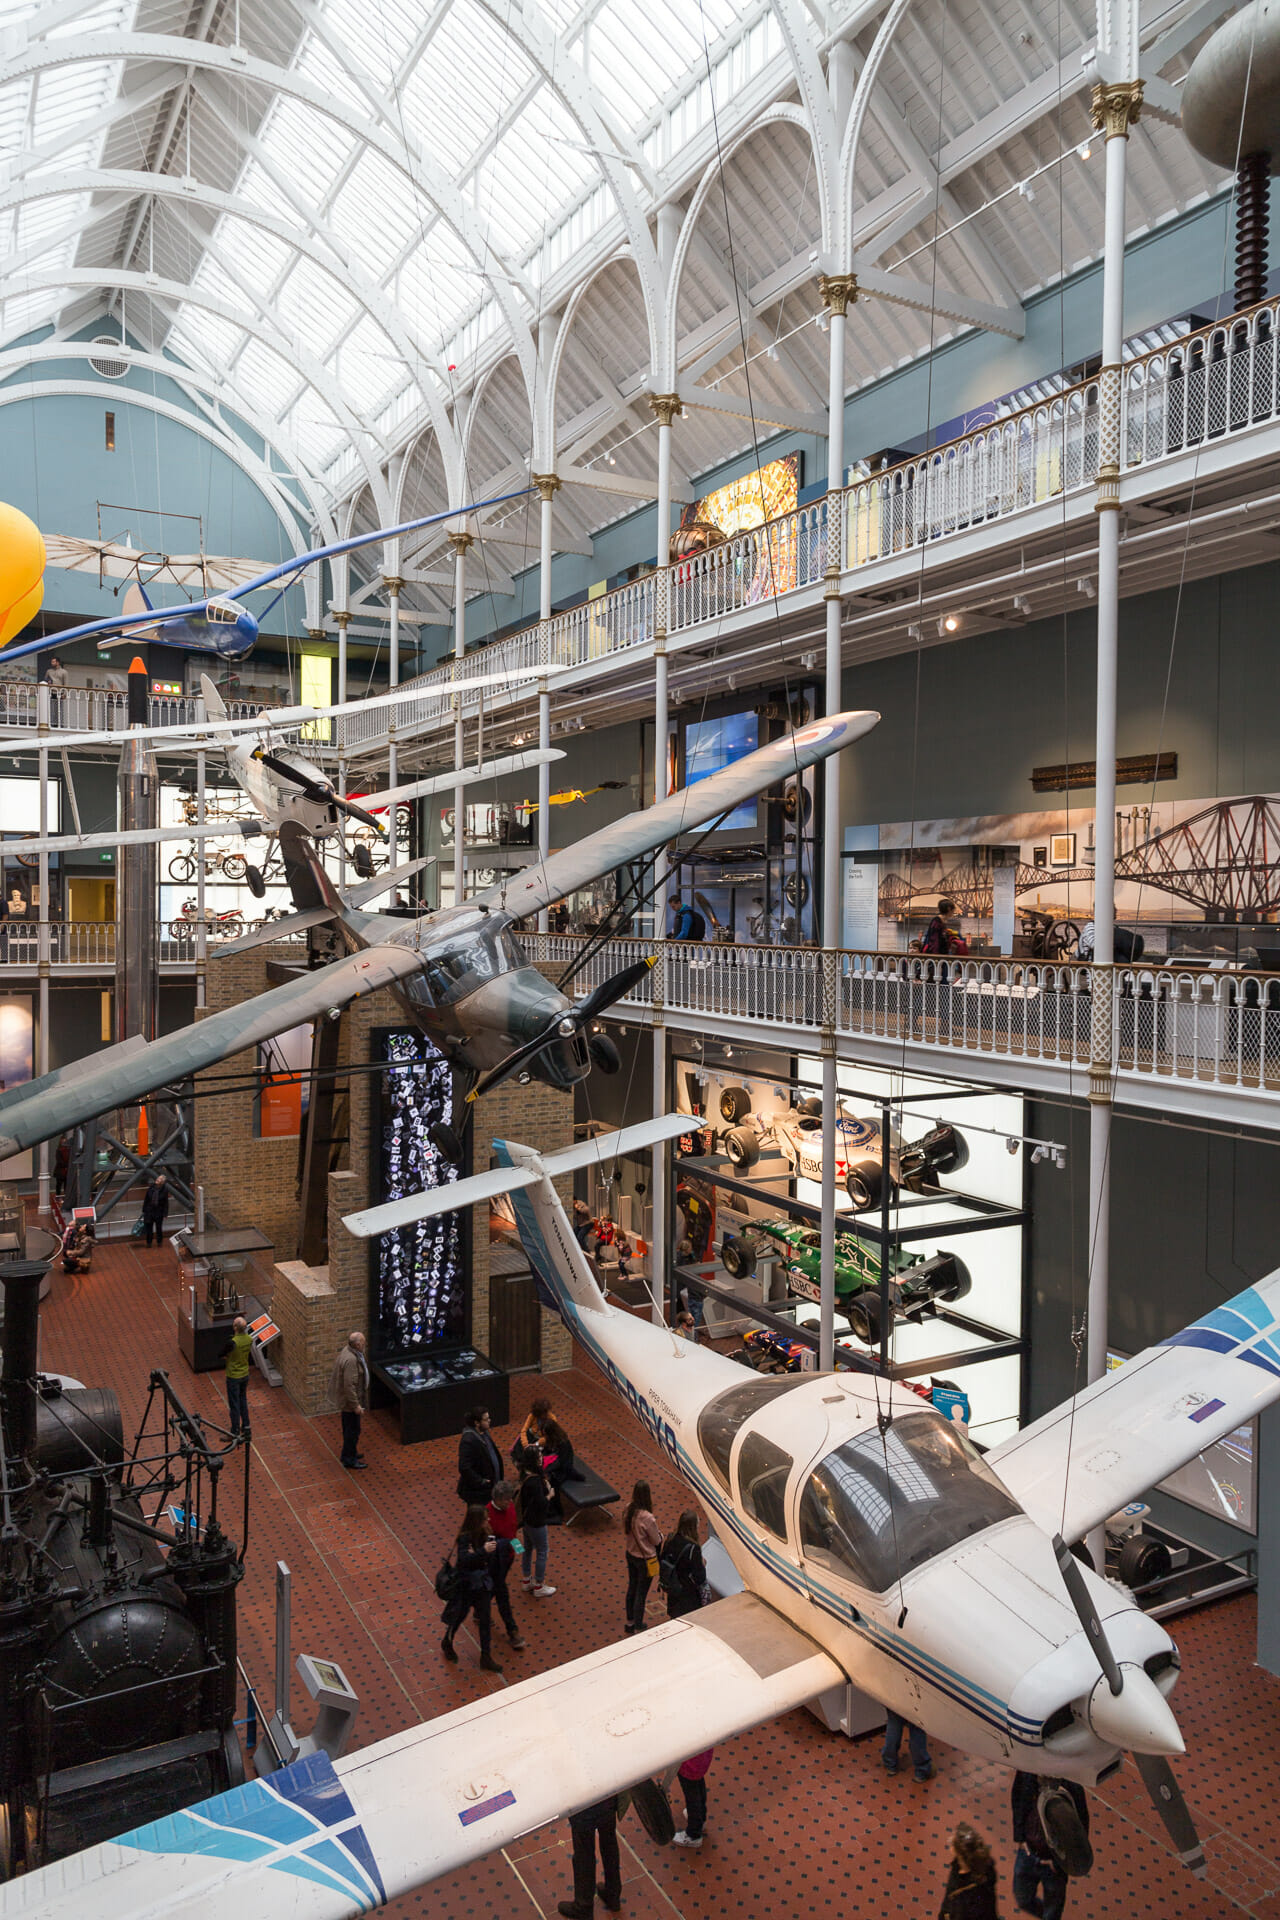 Science and Technology galleries